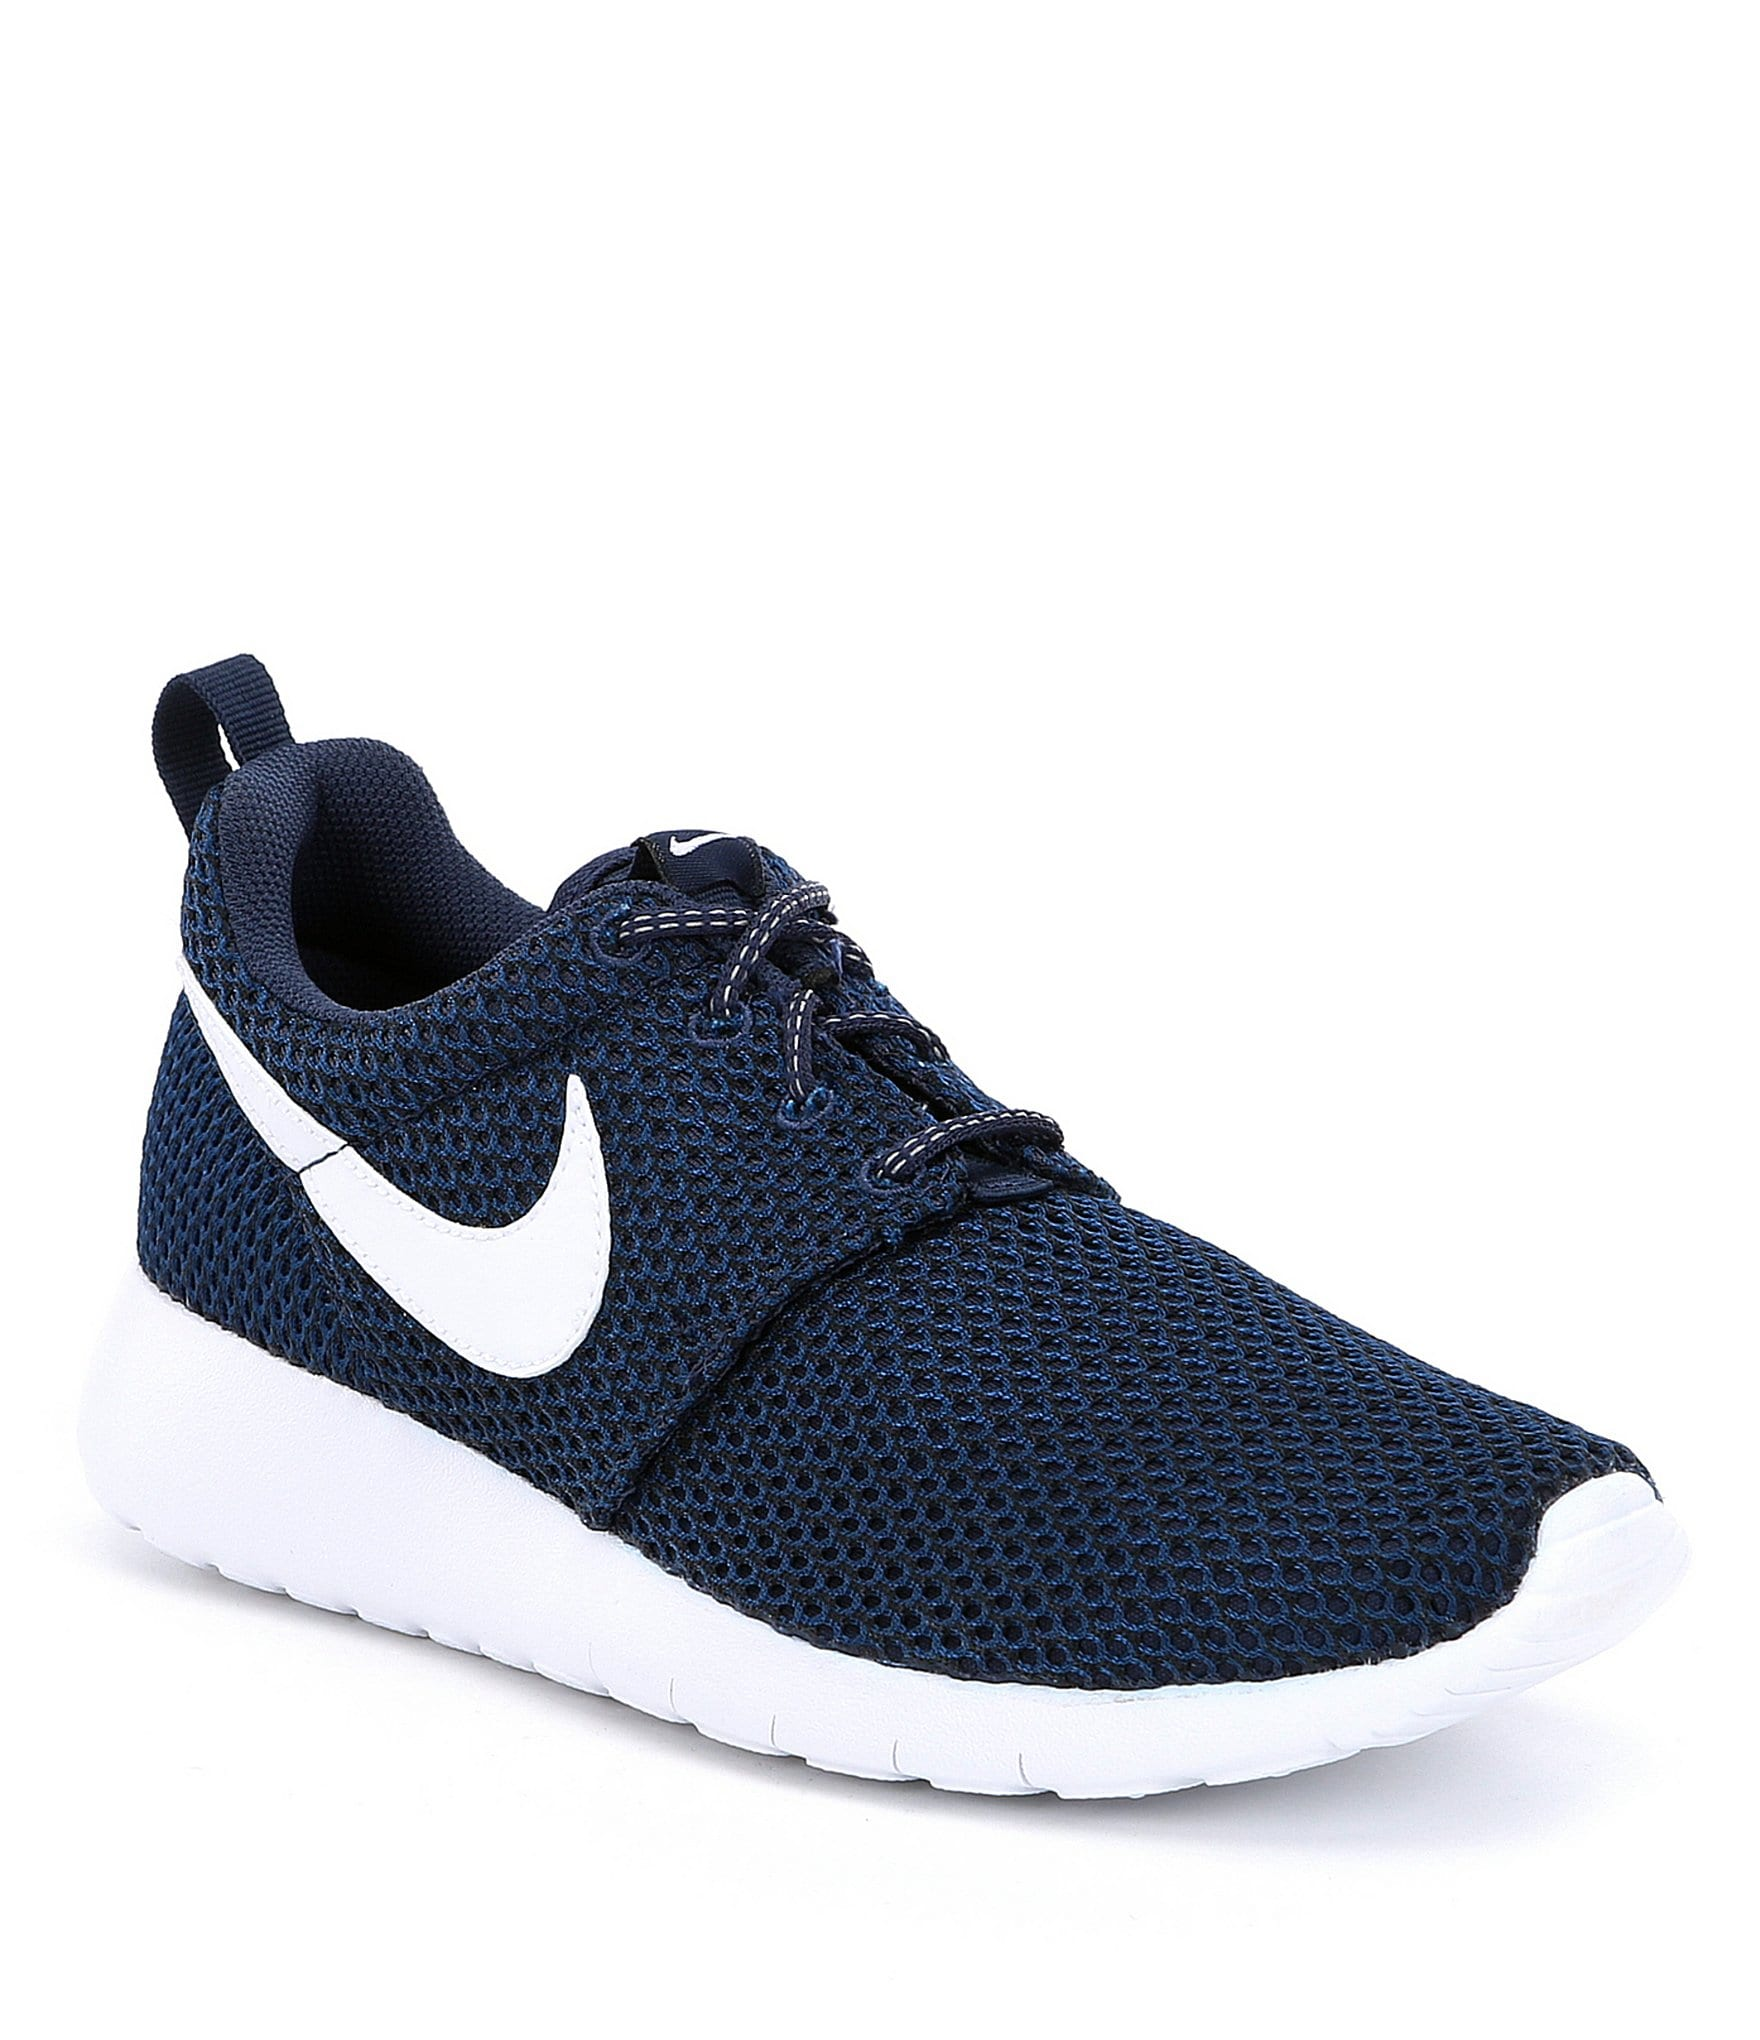 nike roshe run boys running shoes dillards. Black Bedroom Furniture Sets. Home Design Ideas